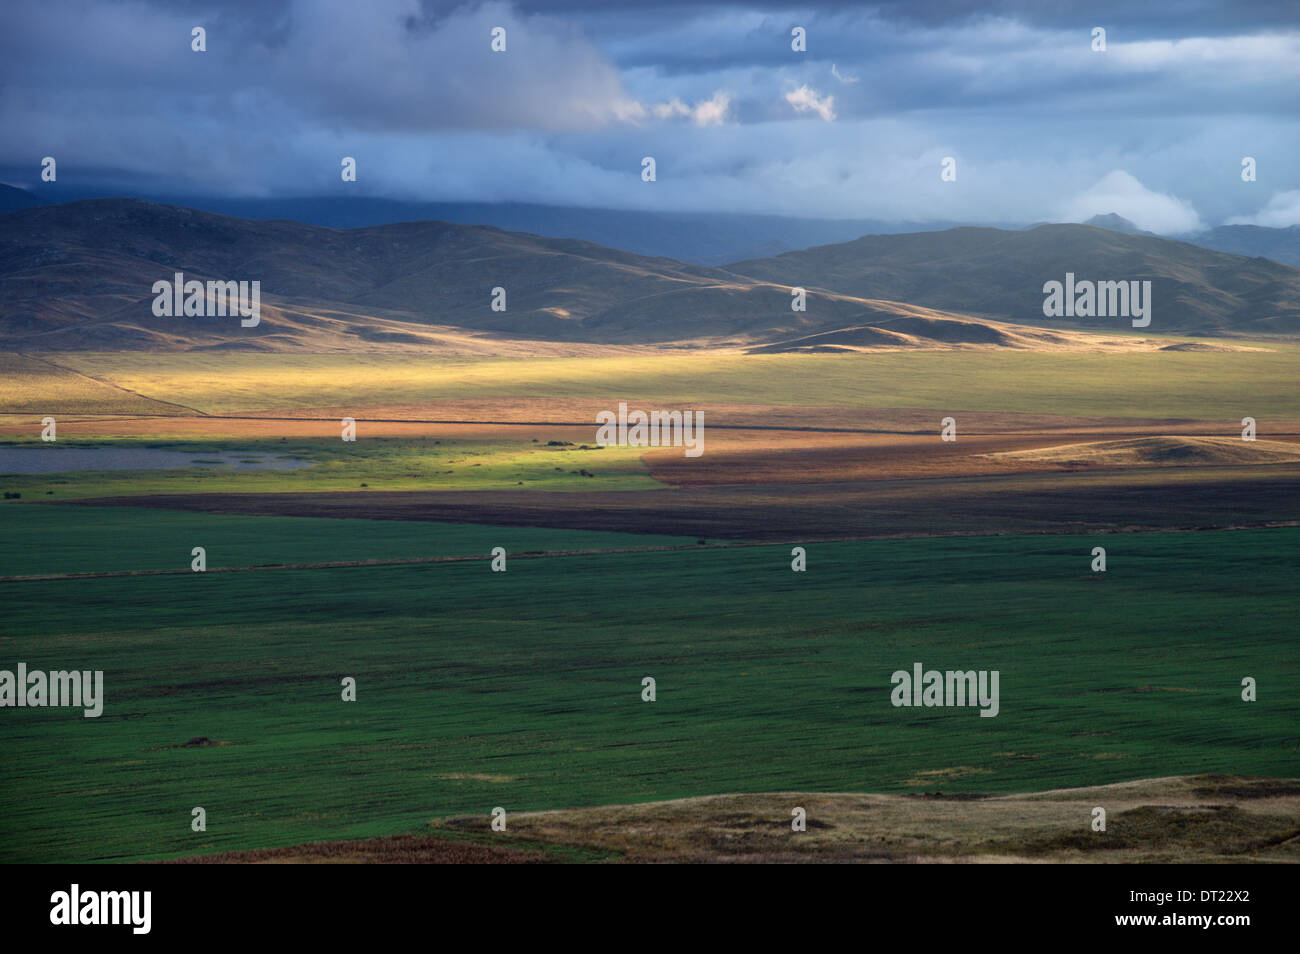 Storm sky and sun gaps on the fields and hills on the horizon - Stock Image